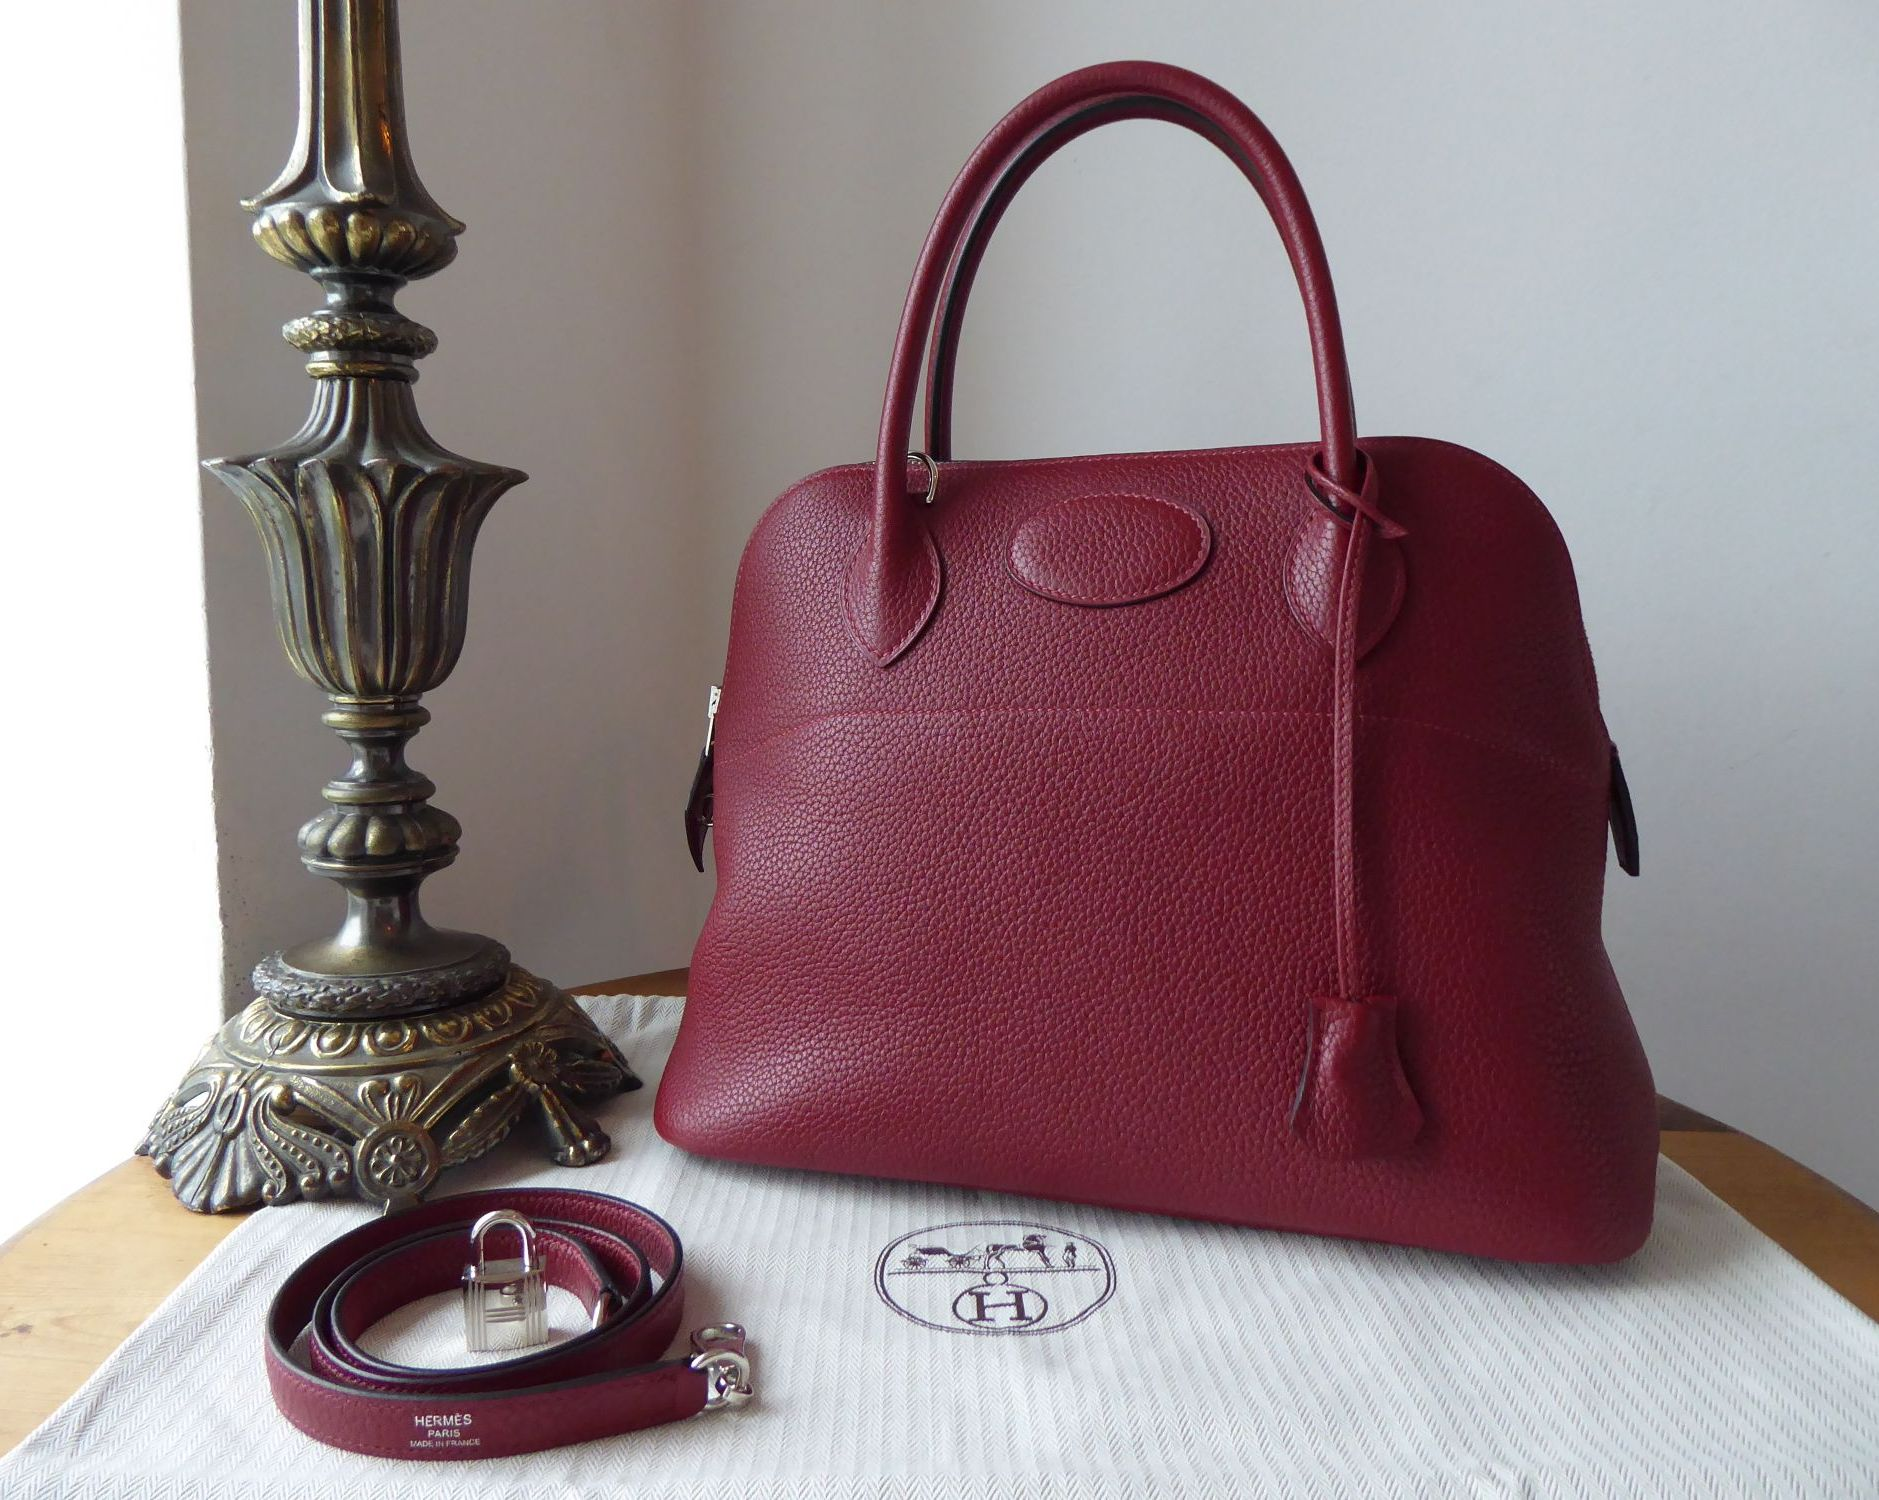 Hermés Bolide 31 in Rouge H Clemence Leather with Palladium Hardware